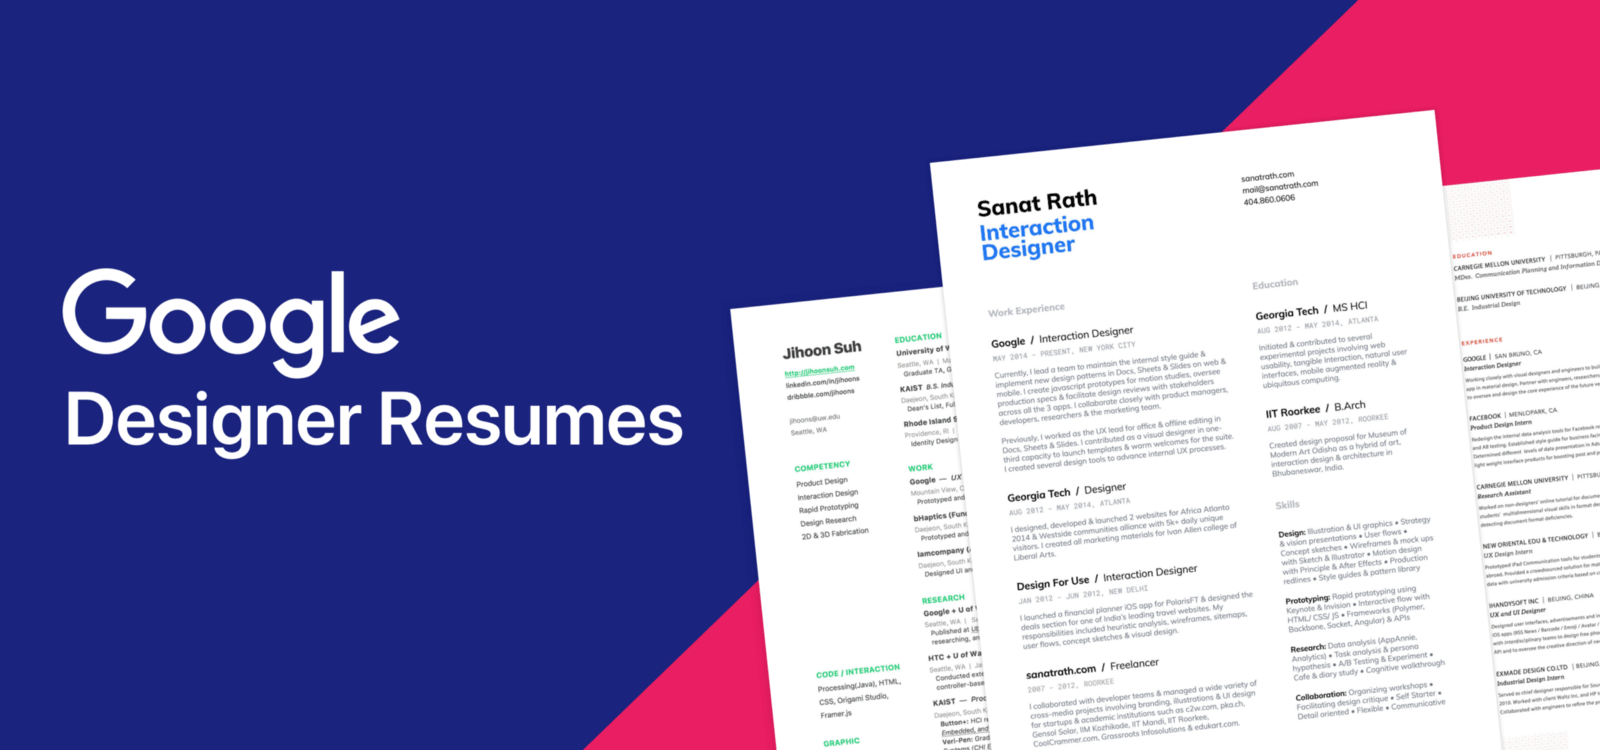 10 Amazing Designer Resumes That Passed Google's Bar